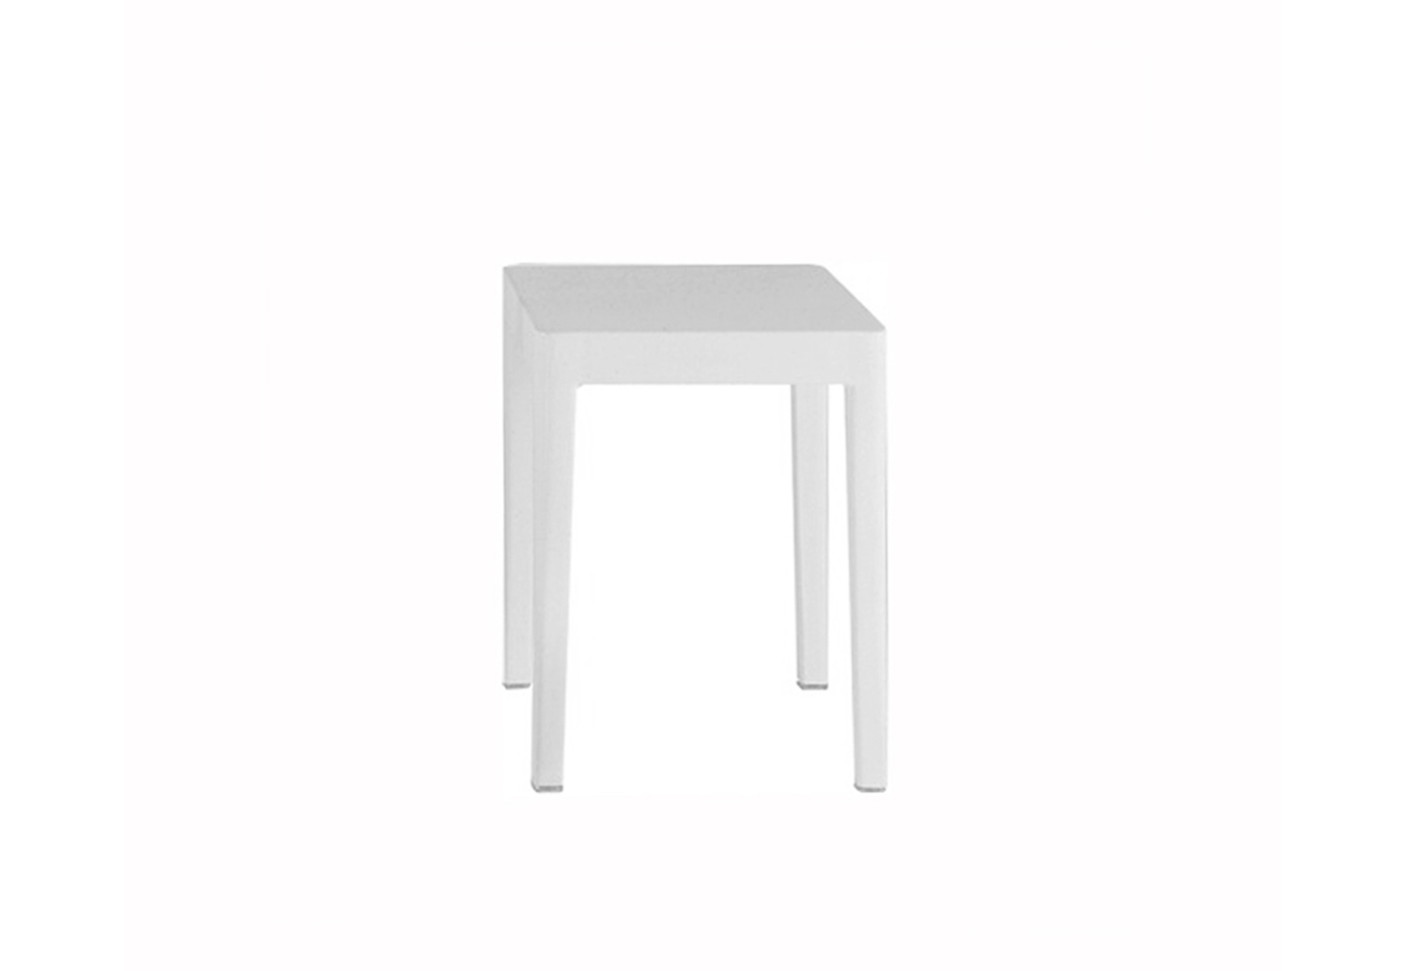 Emeco occasional table 18 by emeco stylepark for Occasional table manufacturers